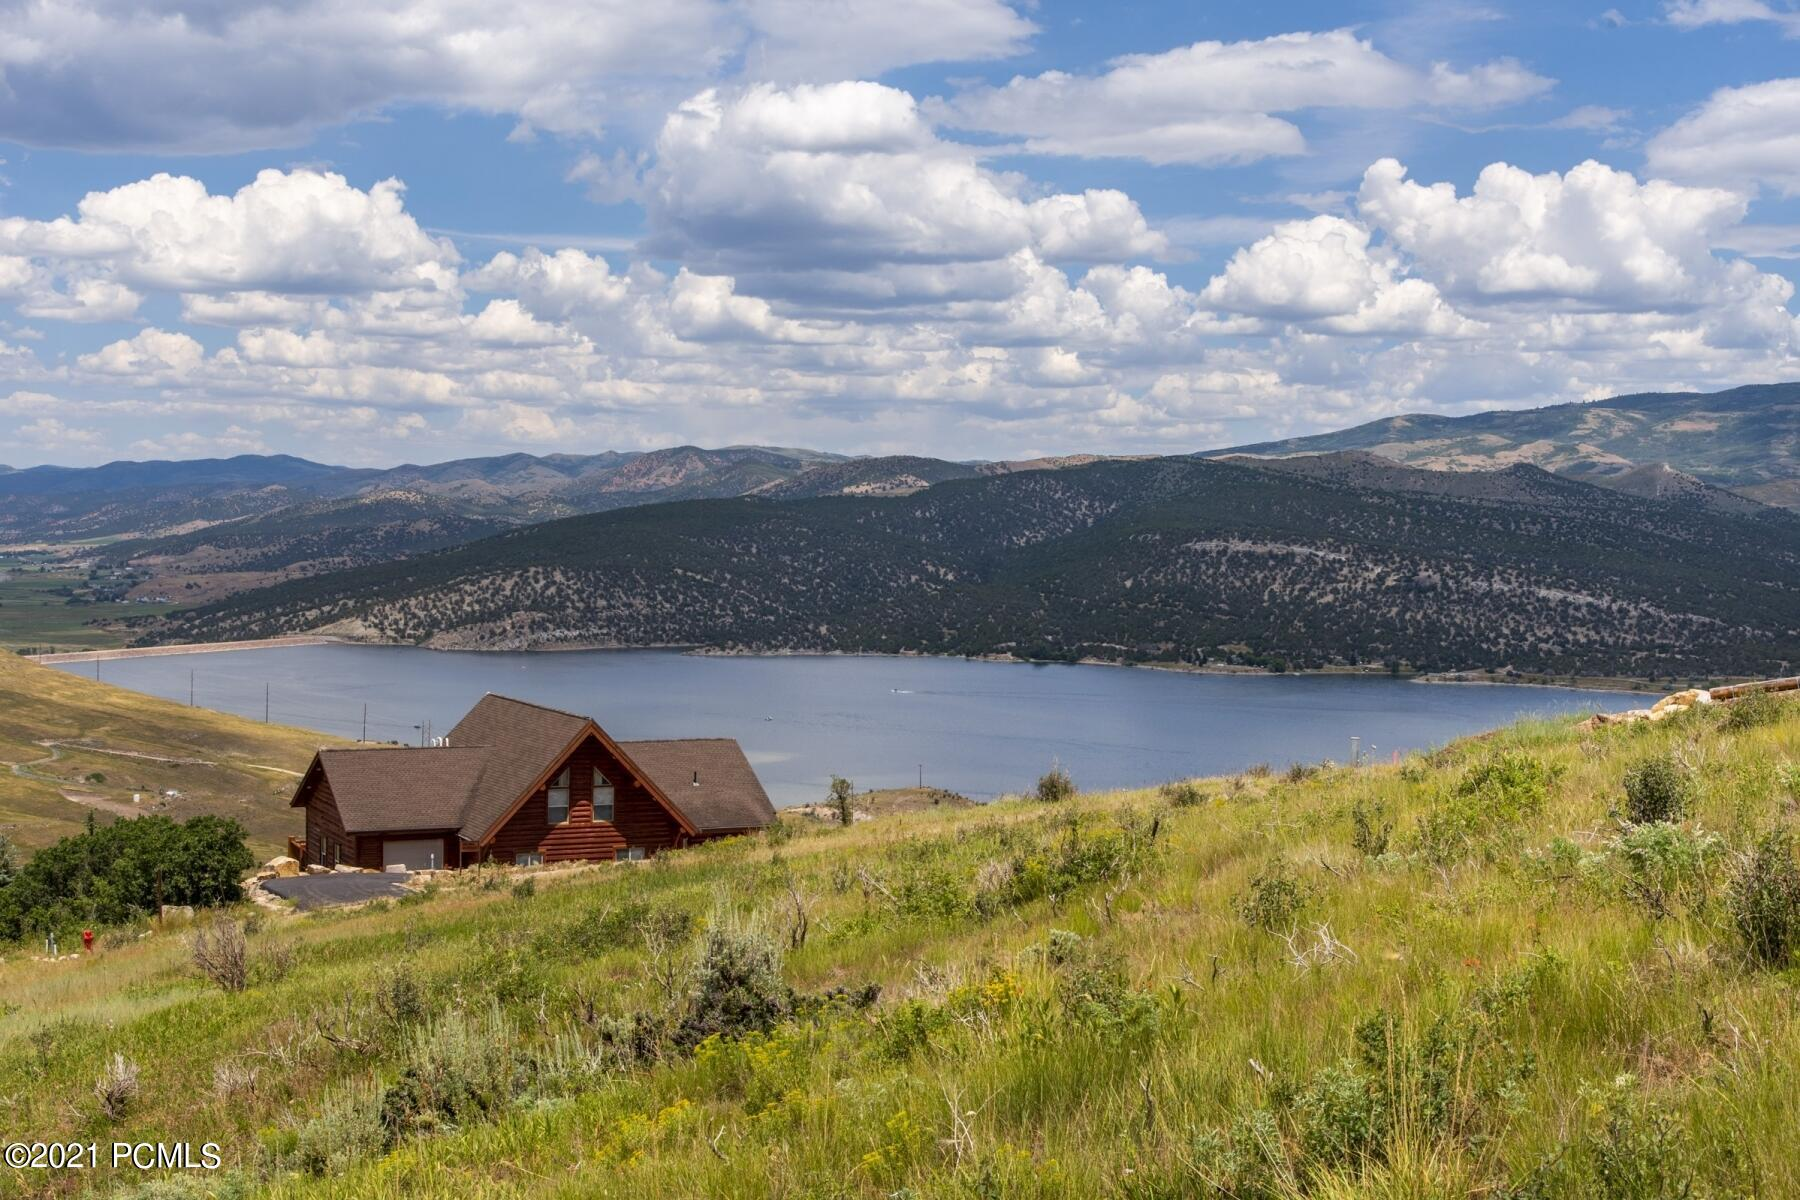 You will find this spectacular 1 acre view lot in Rockport Estates, a gated community that is only 20 minutes from Park City with easy access to I-80 or scenic Browns Canyon. The ideal location for year round beauty and recreation as it is quick access to playing on Rockport Reservoir, just minutes to  world class fly fishing on the Weber River and less than 30 minutes to 3  ski resorts! This location is perfect for mountain living with easy access to everything you need!